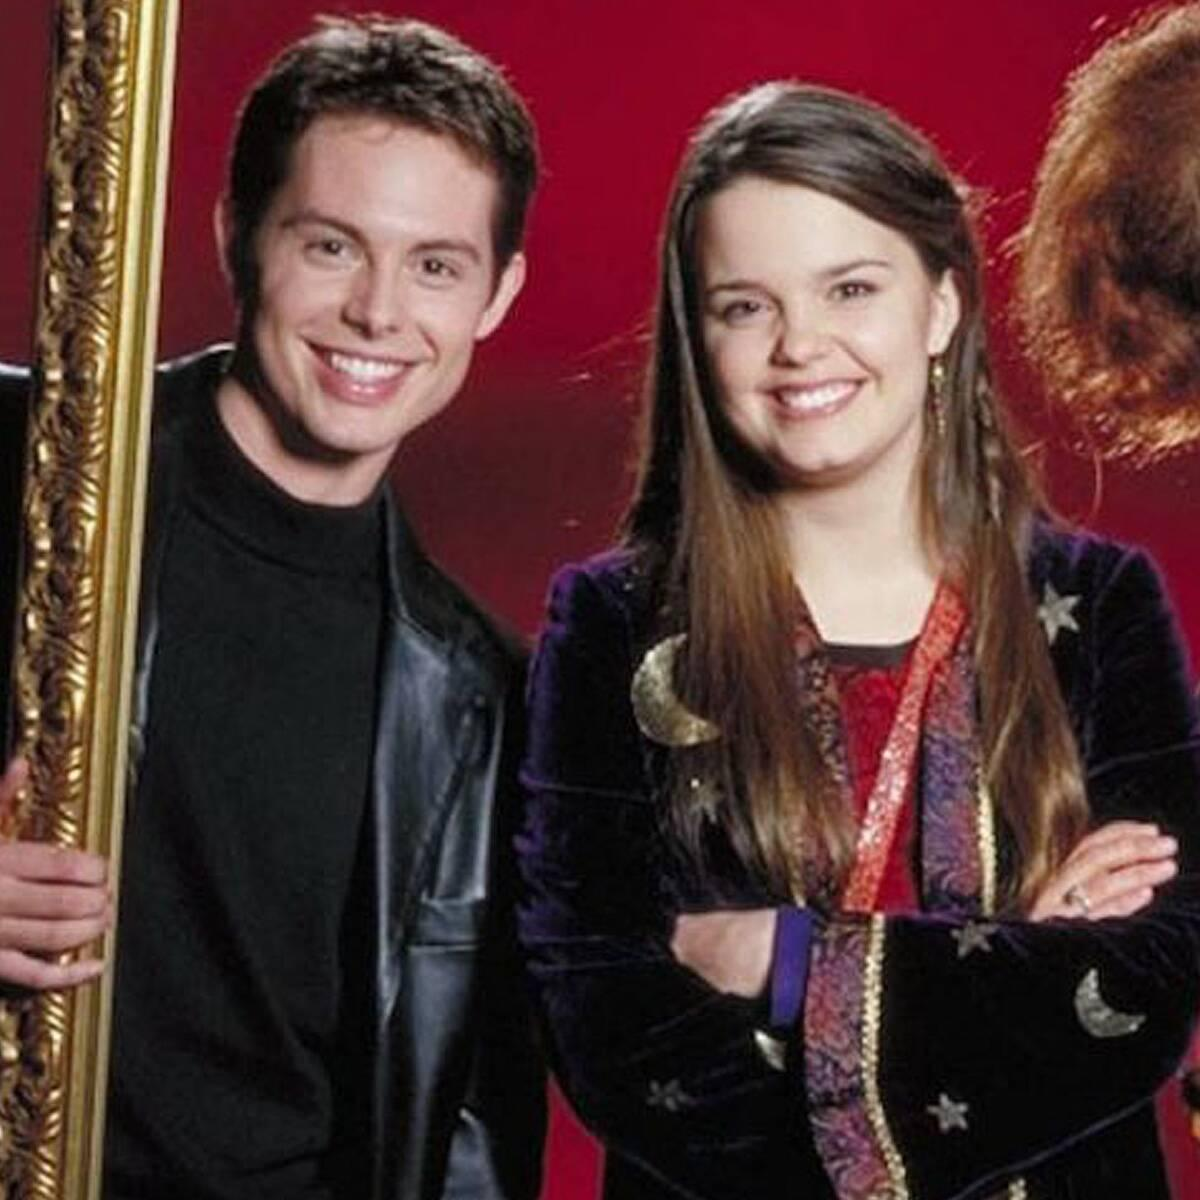 Halloweentown 's Kimberly J. Brown Shares How She Fell in Love With Her Disney Co-Star – Yahoo Entertainment